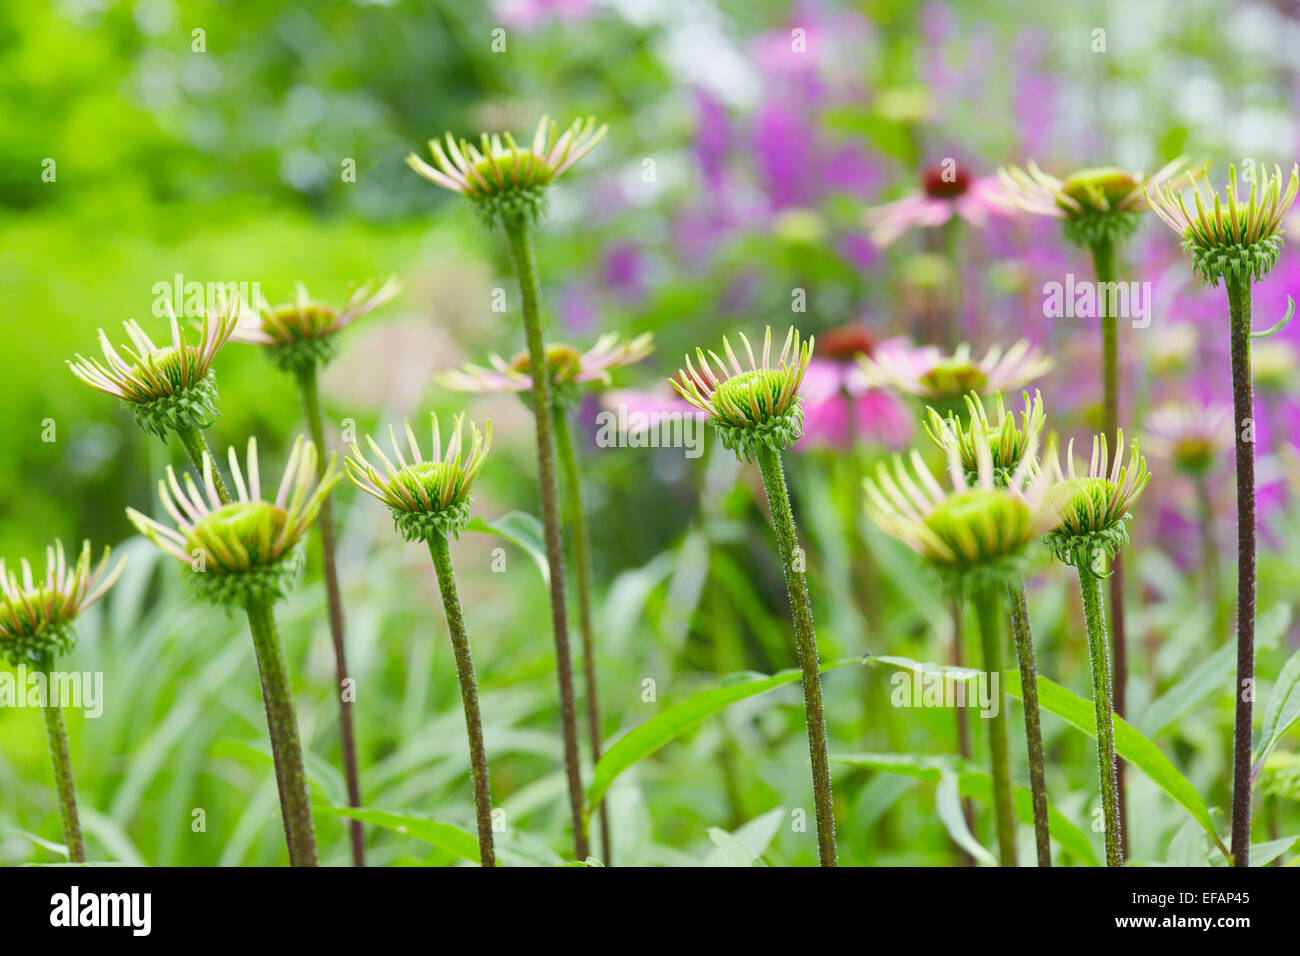 Cone flower opening in an English cottage garden - Stock Image